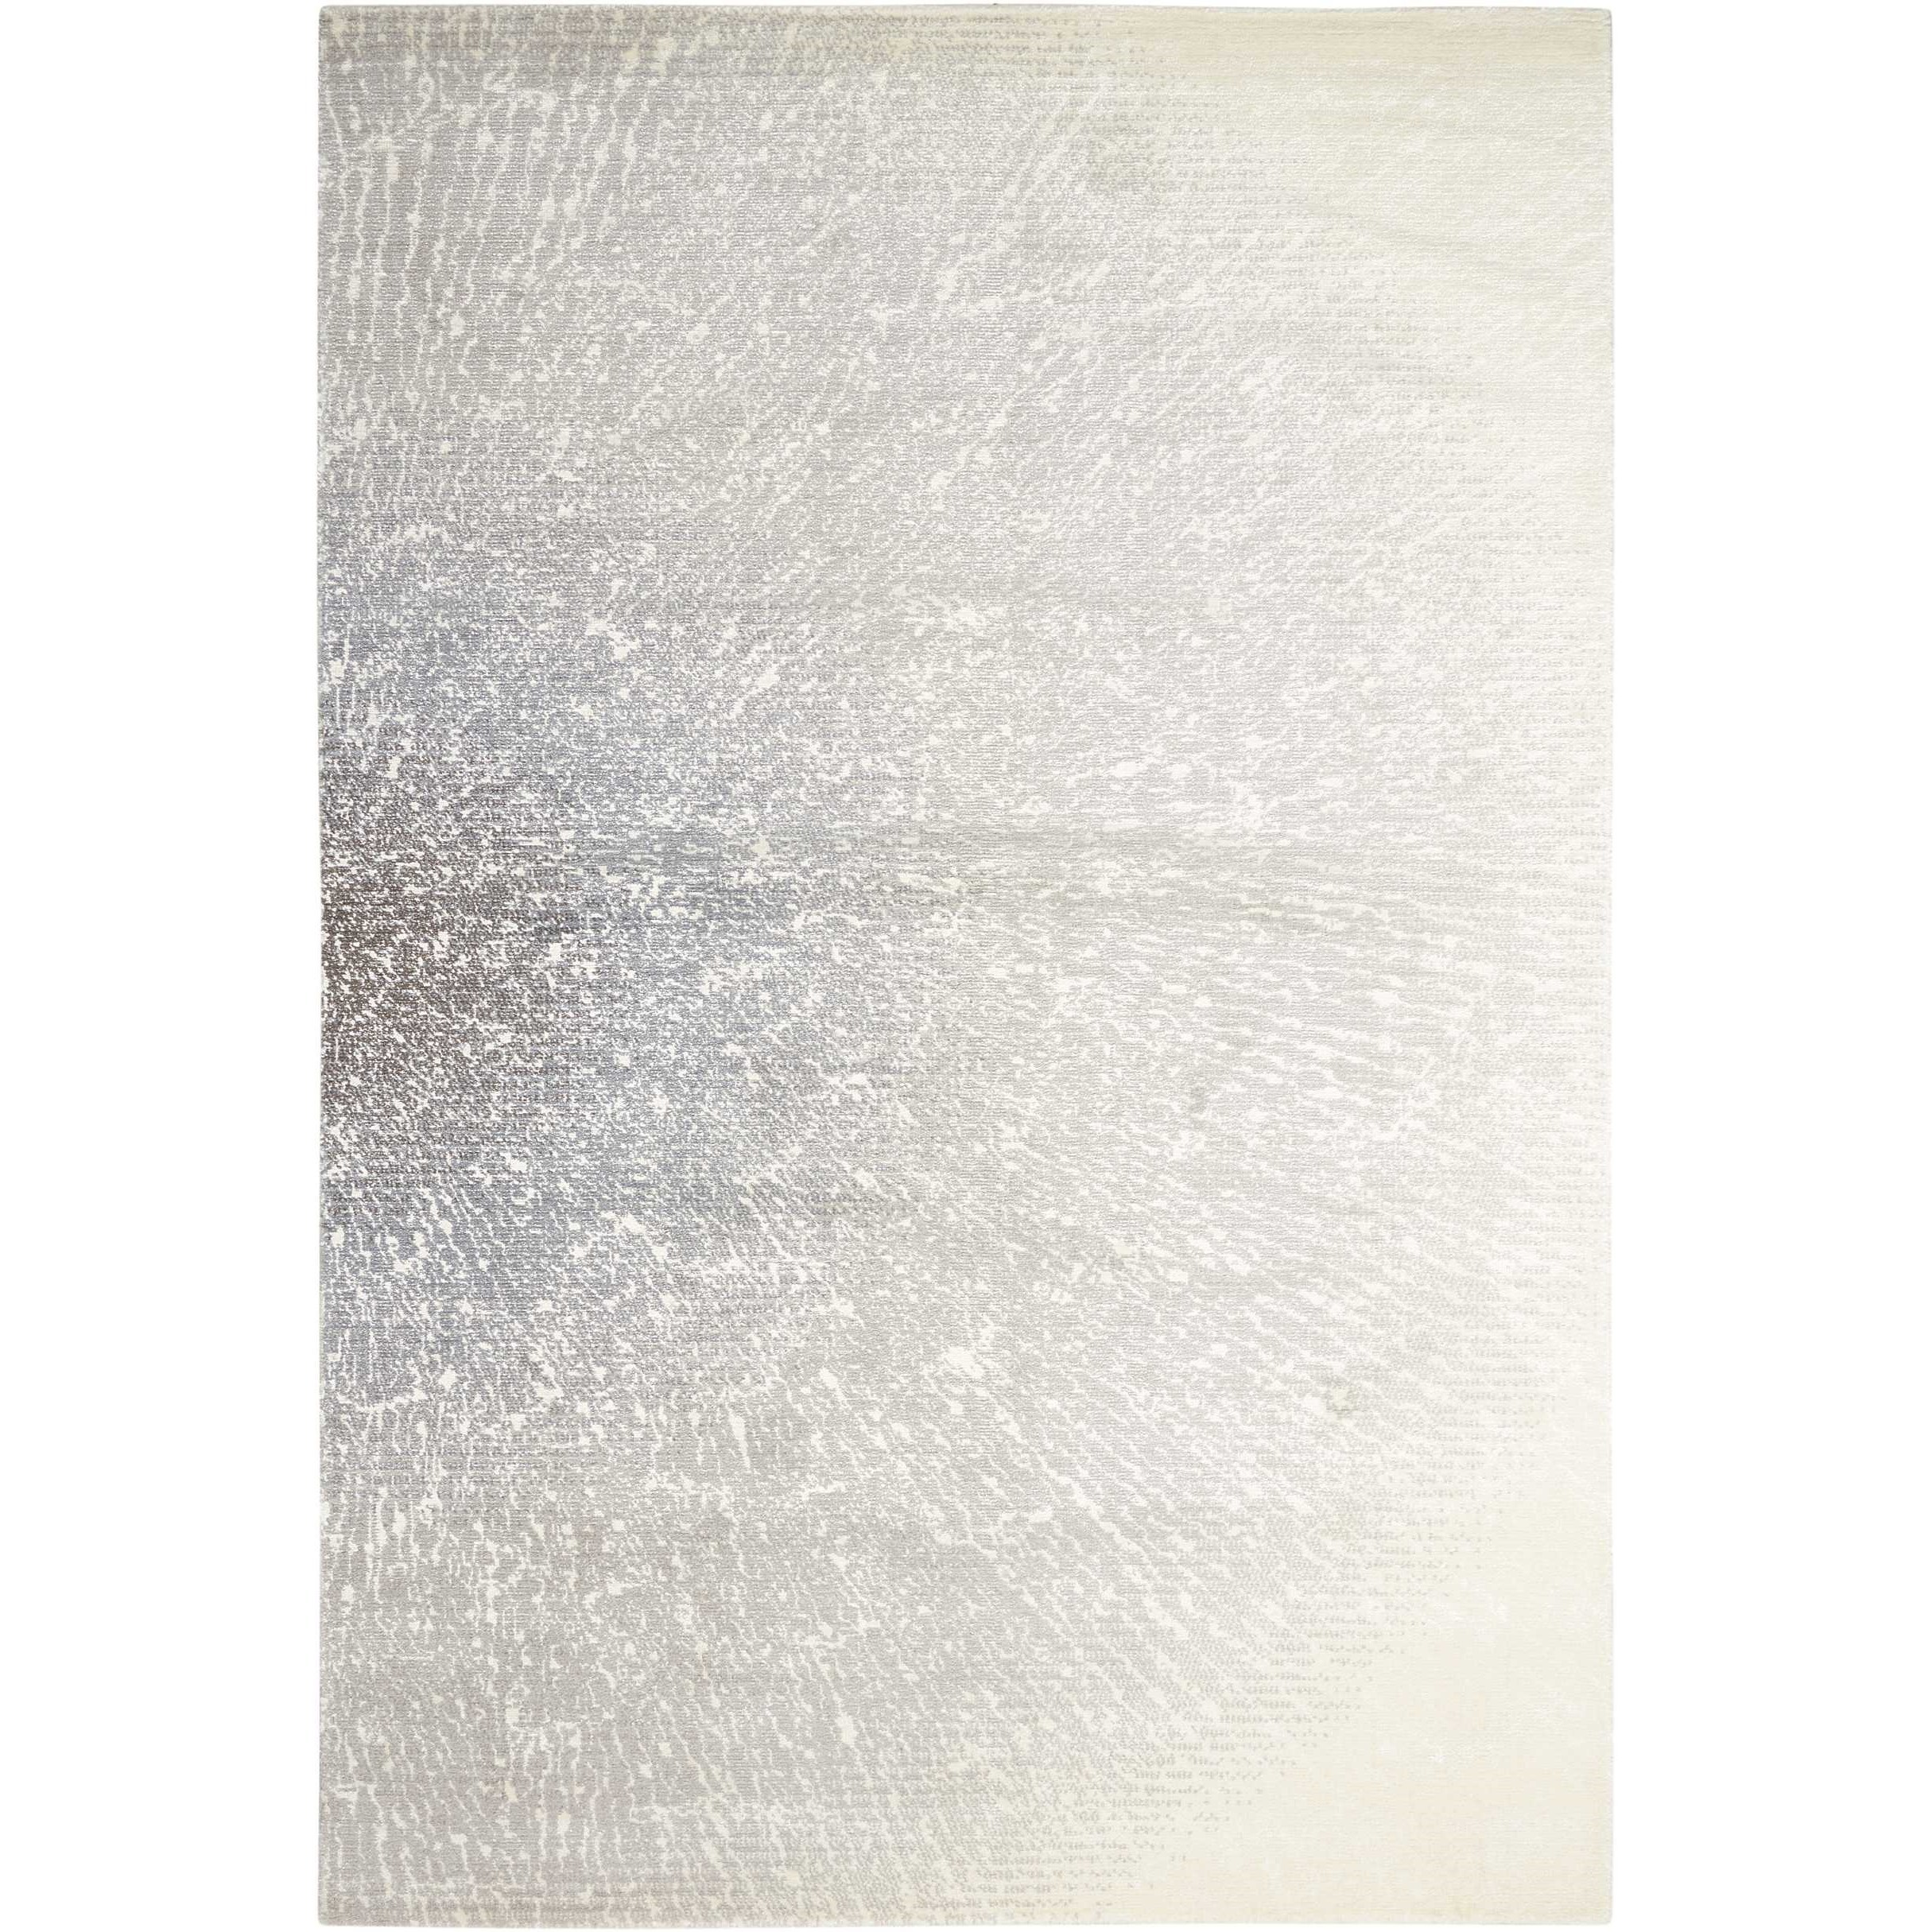 Twilight 10'x14' Oversized Rug by Nourison at Sprintz Furniture